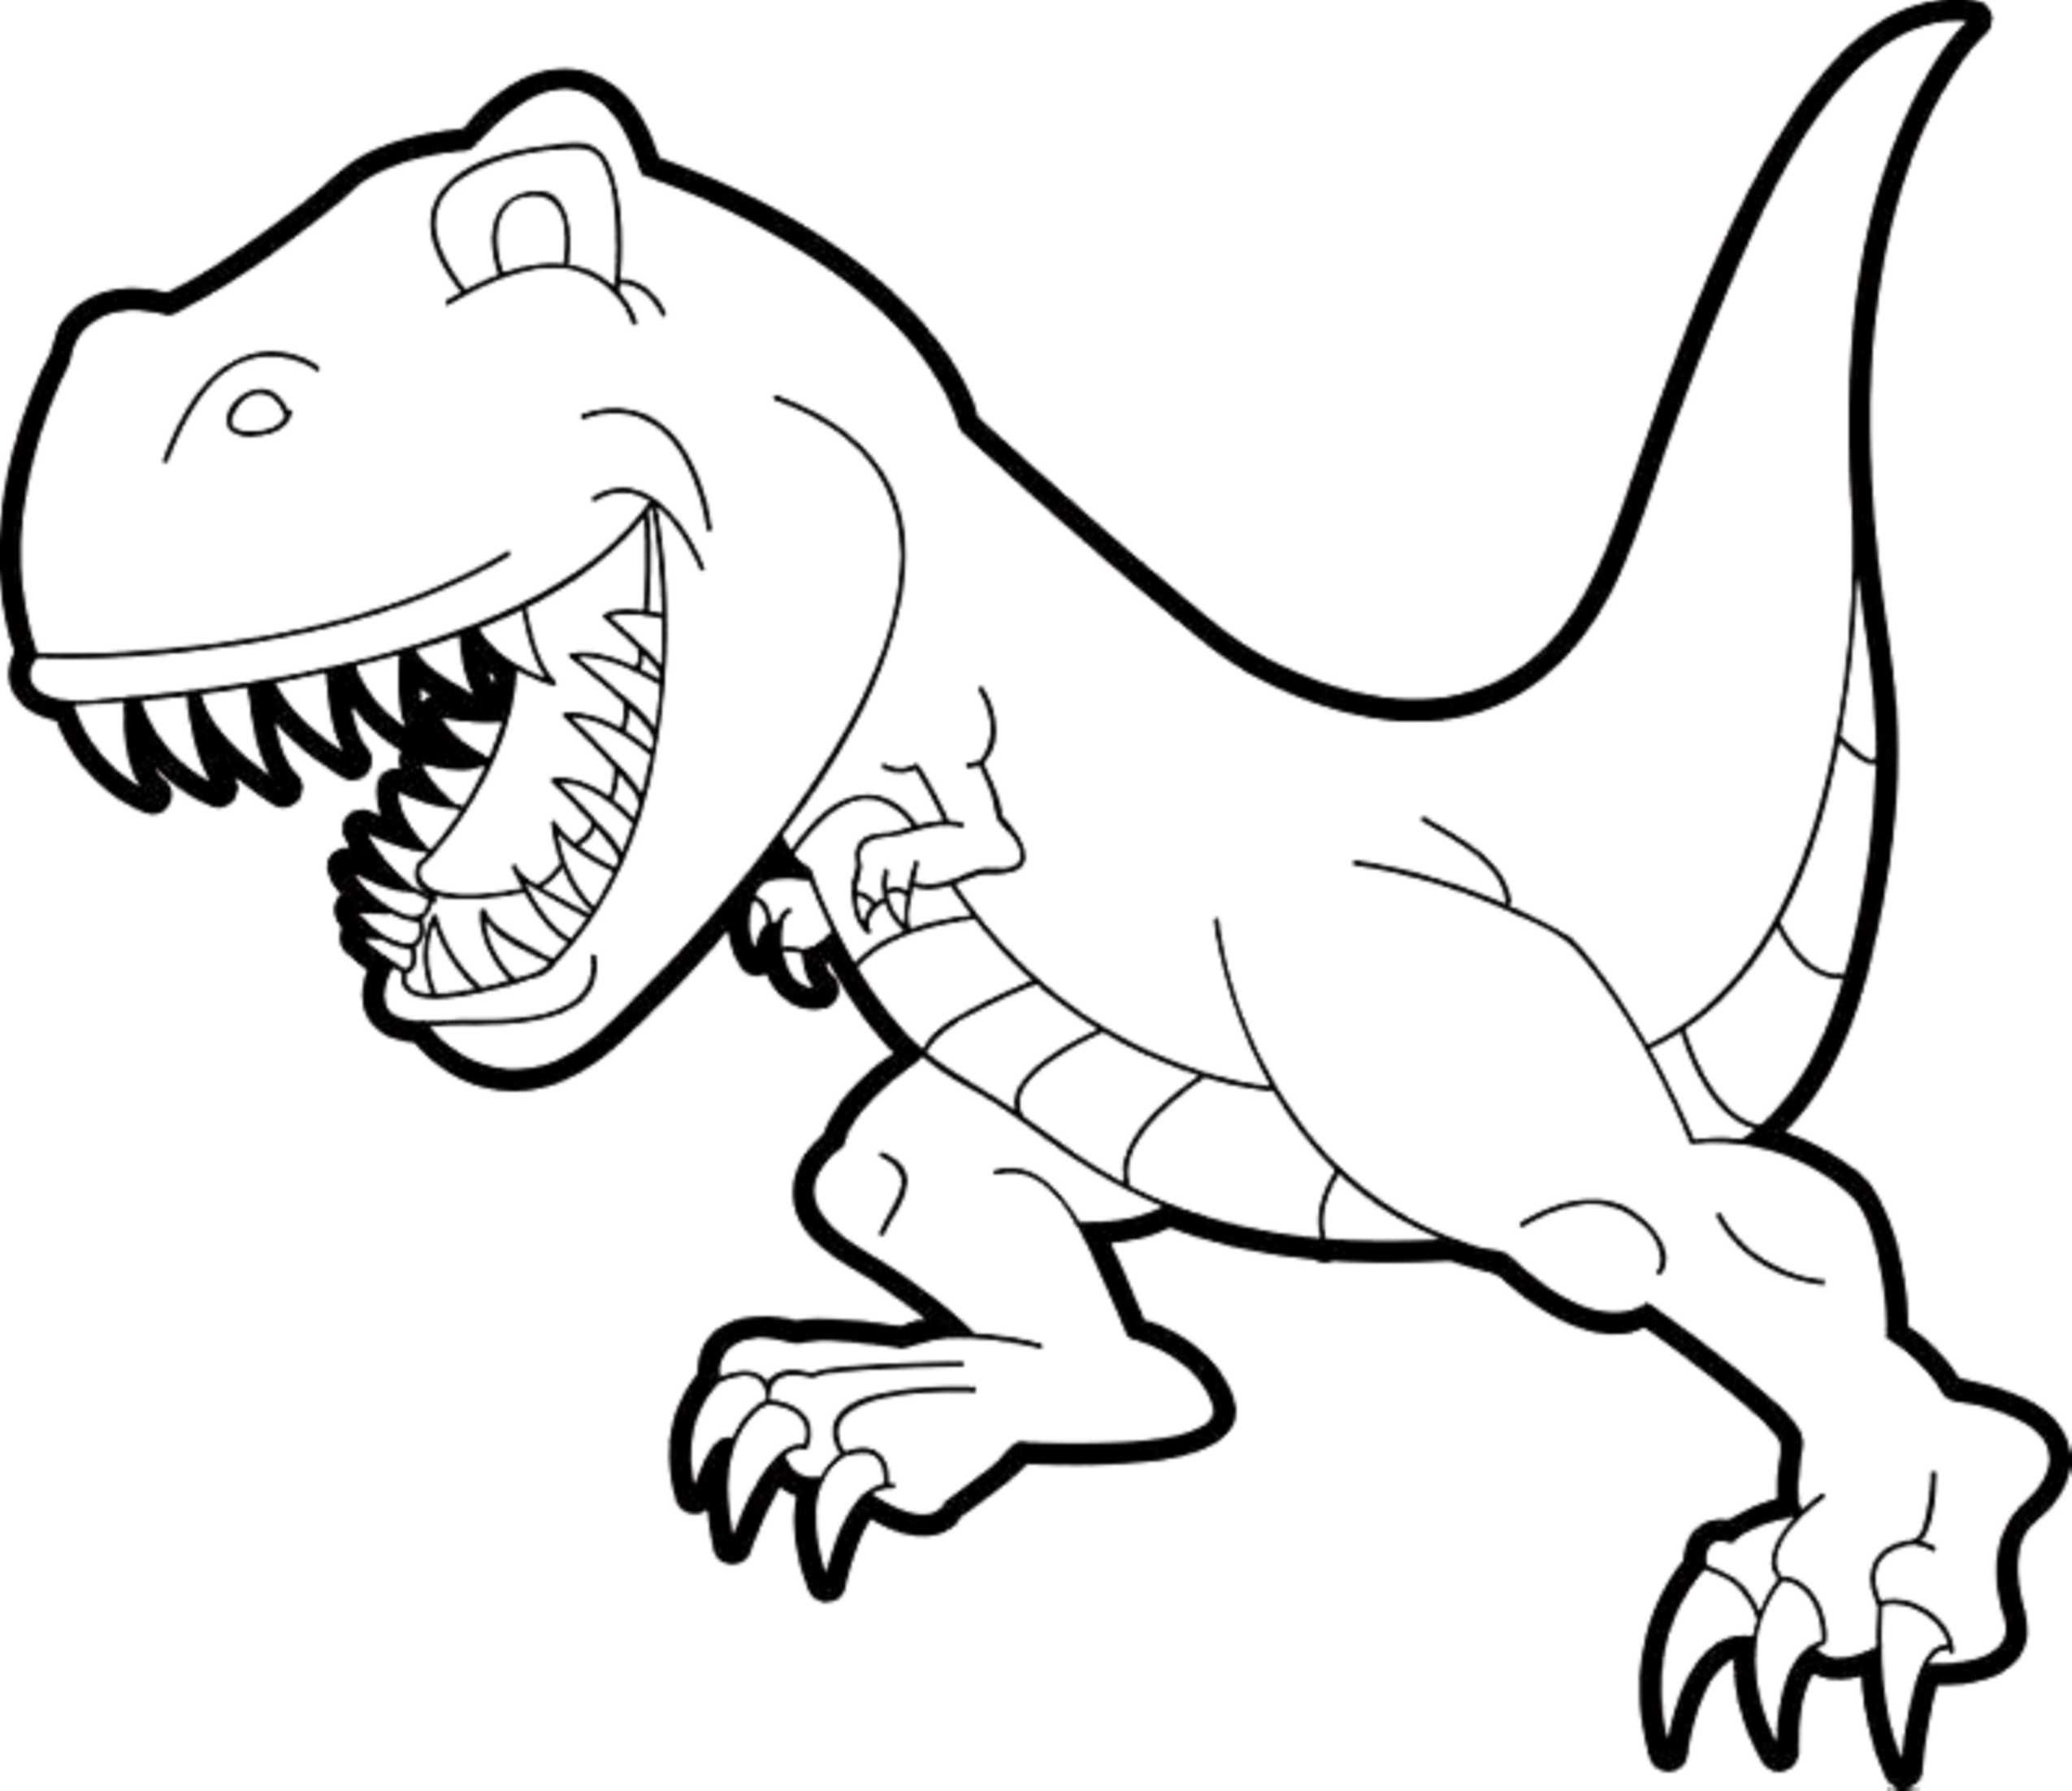 T Rex Coloring Pages Dinosaur Coloring Pages Dinosaur Coloring